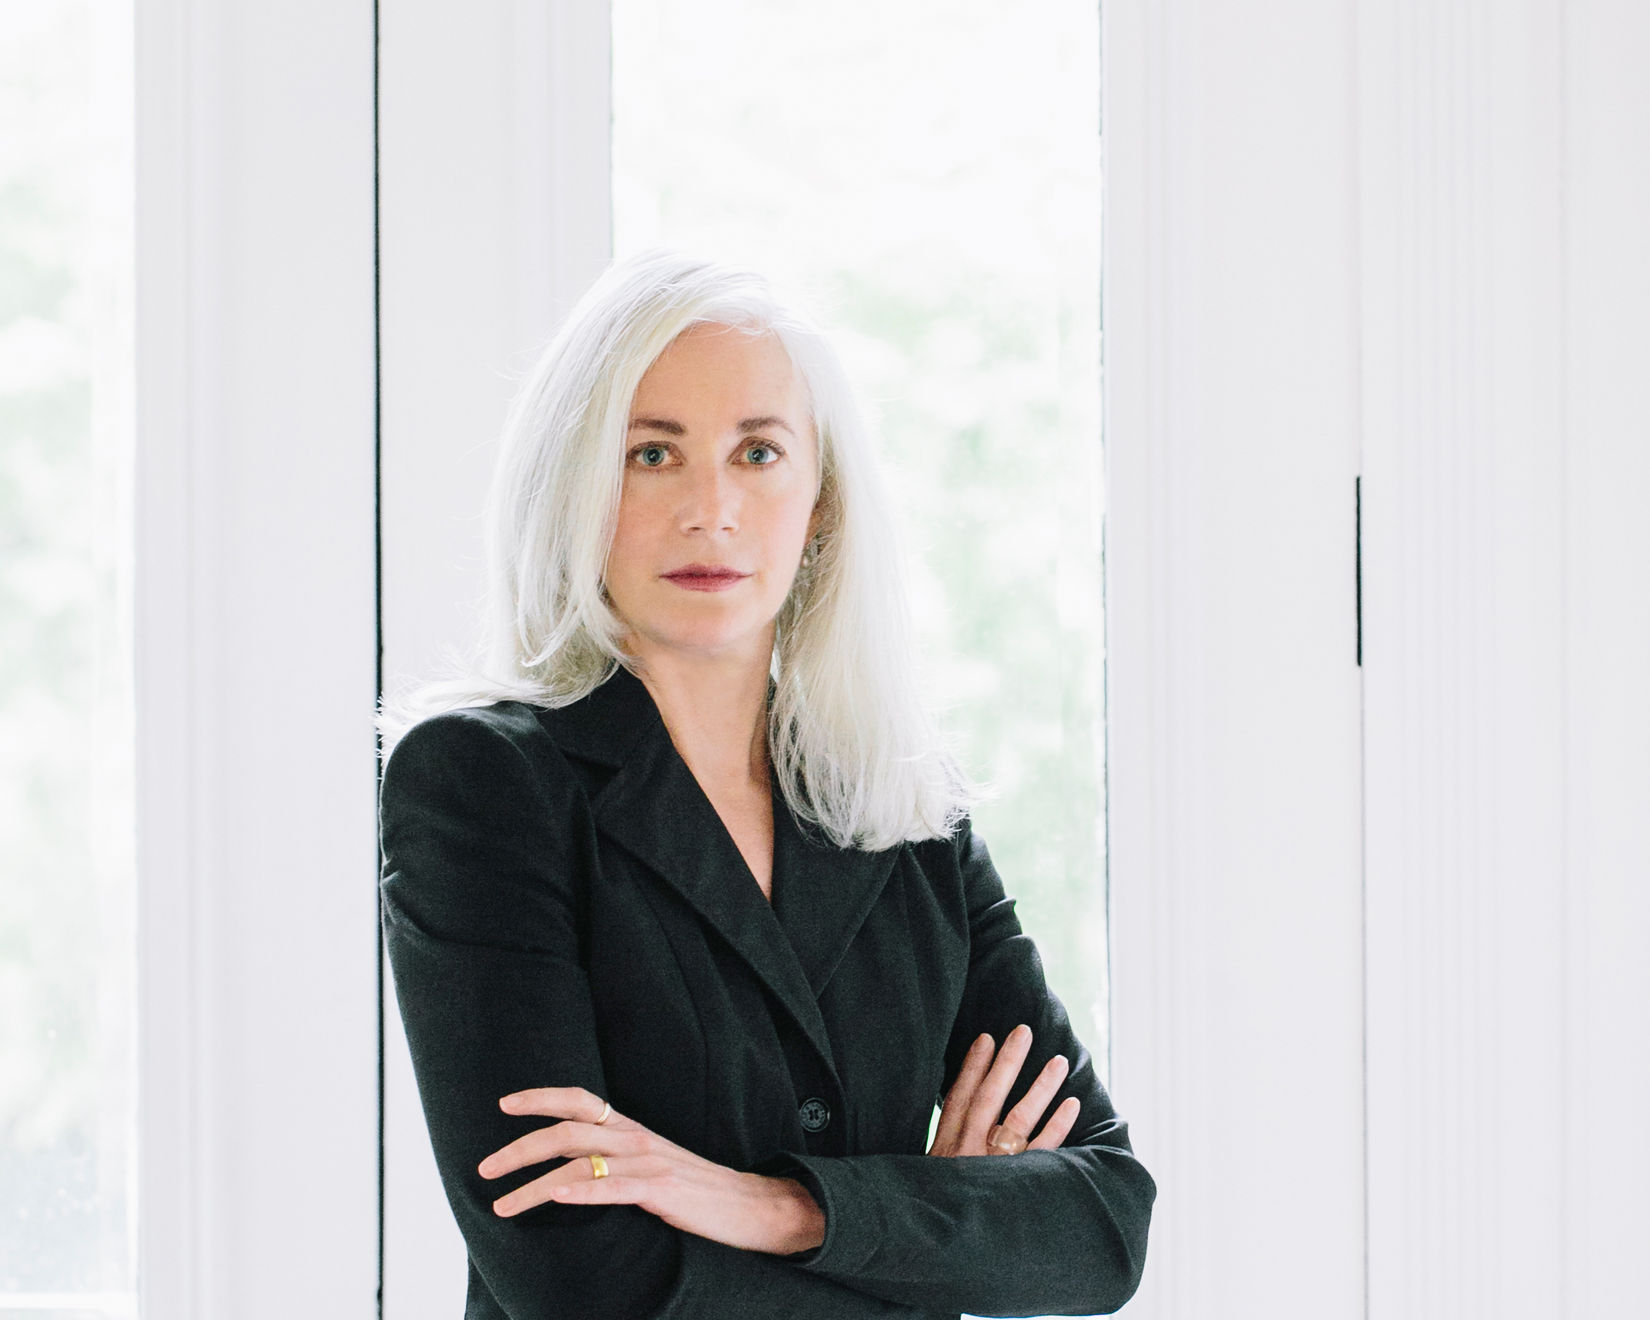 Mary Rozell, UBS Art Collection Global Head, on the Evolving Art Market